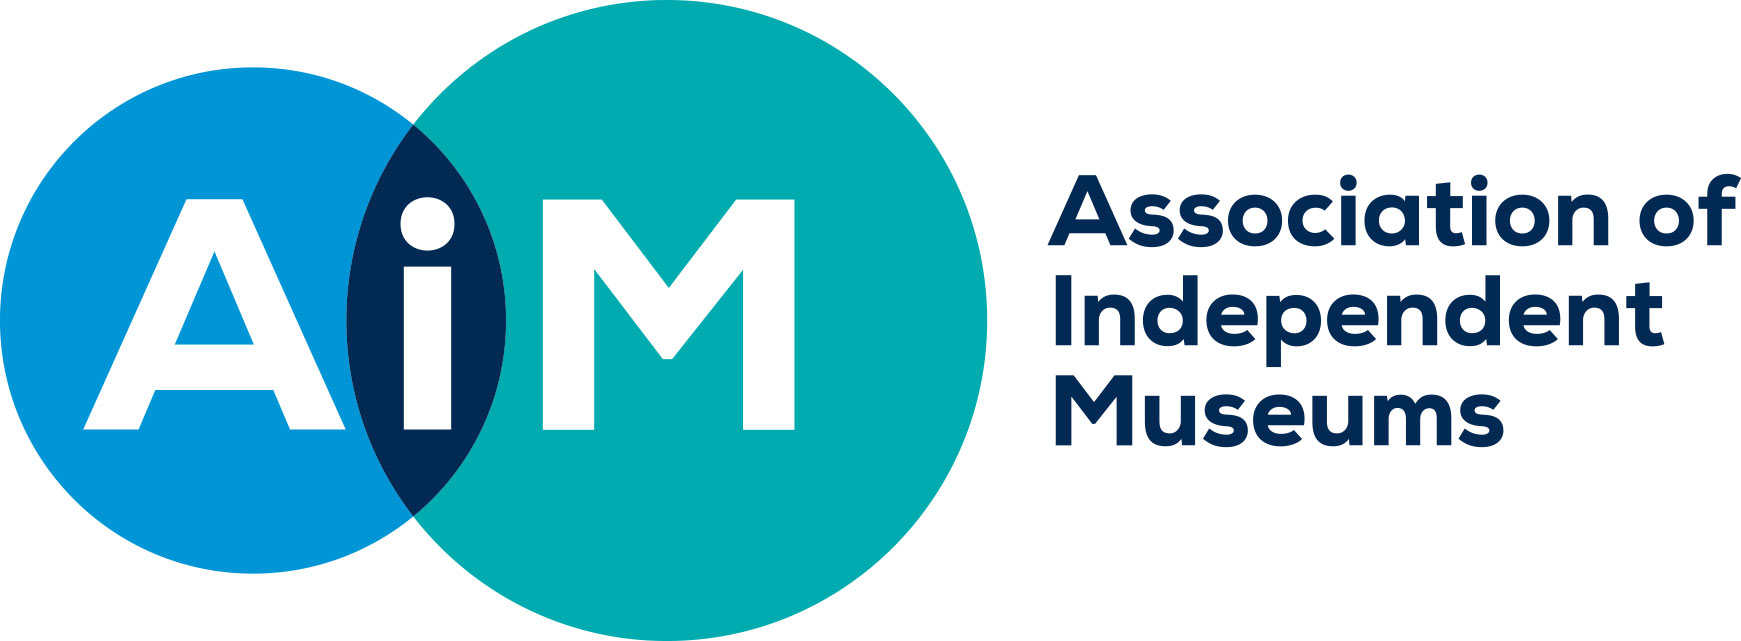 Assoc of Independent Museums